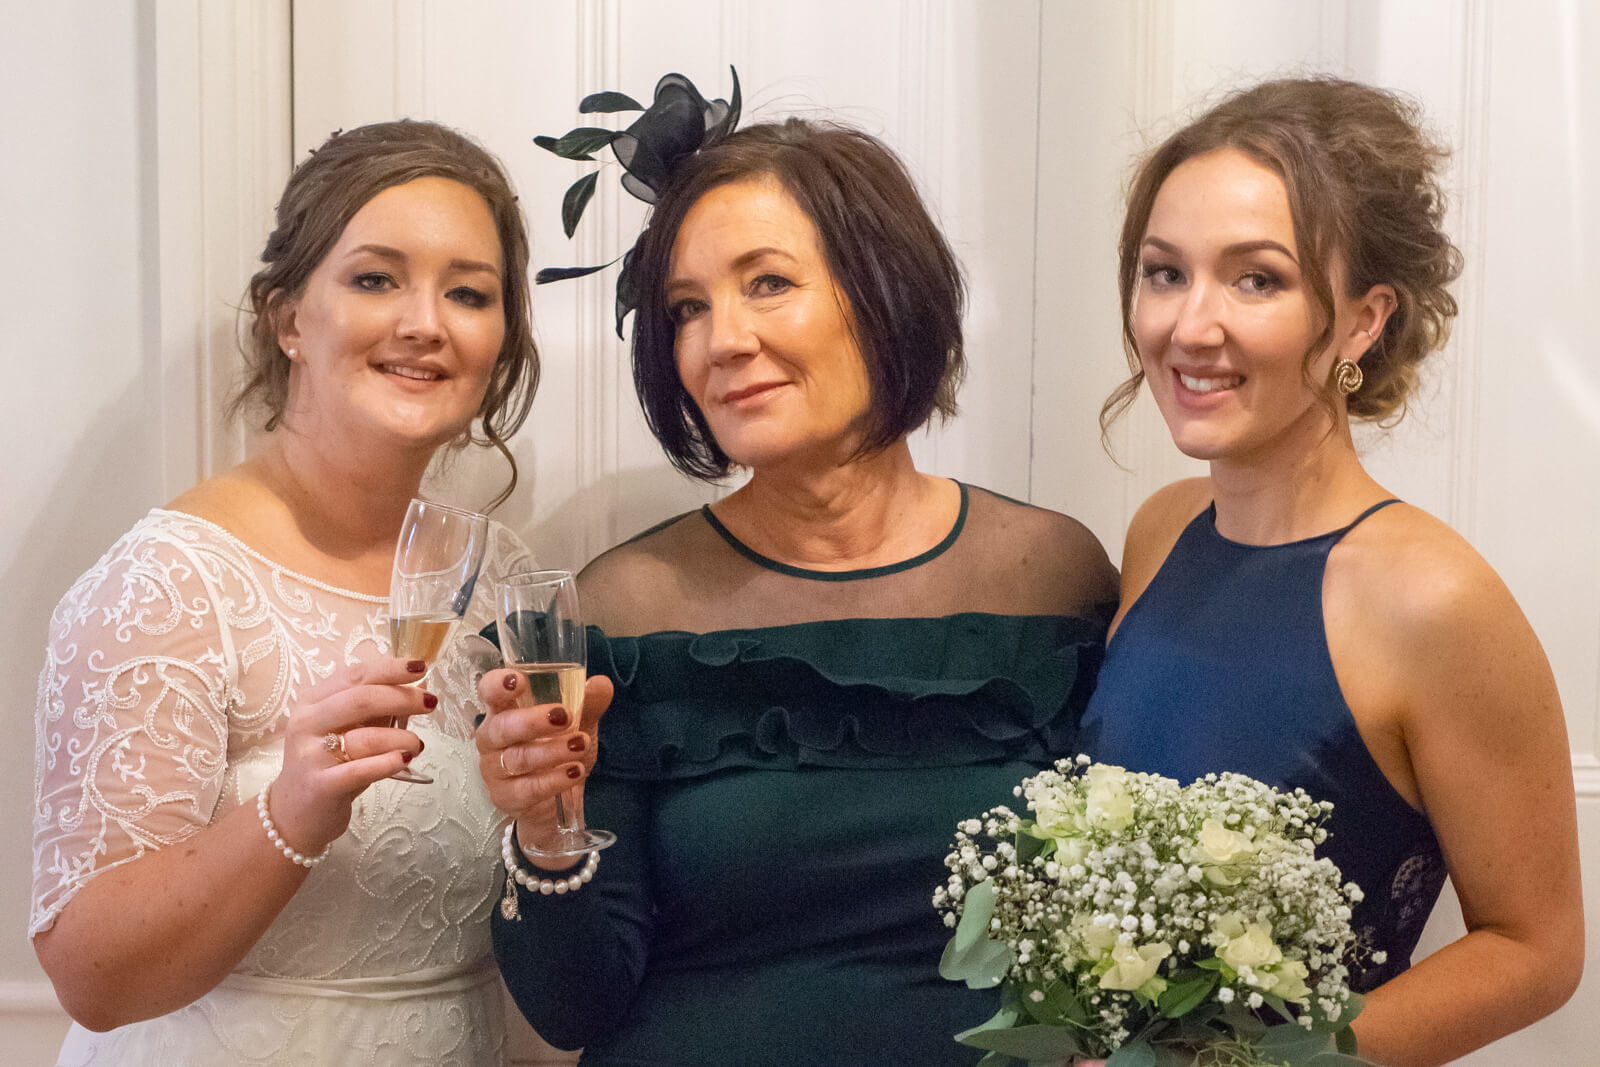 Mother of the bride and her daughters pose with champagne